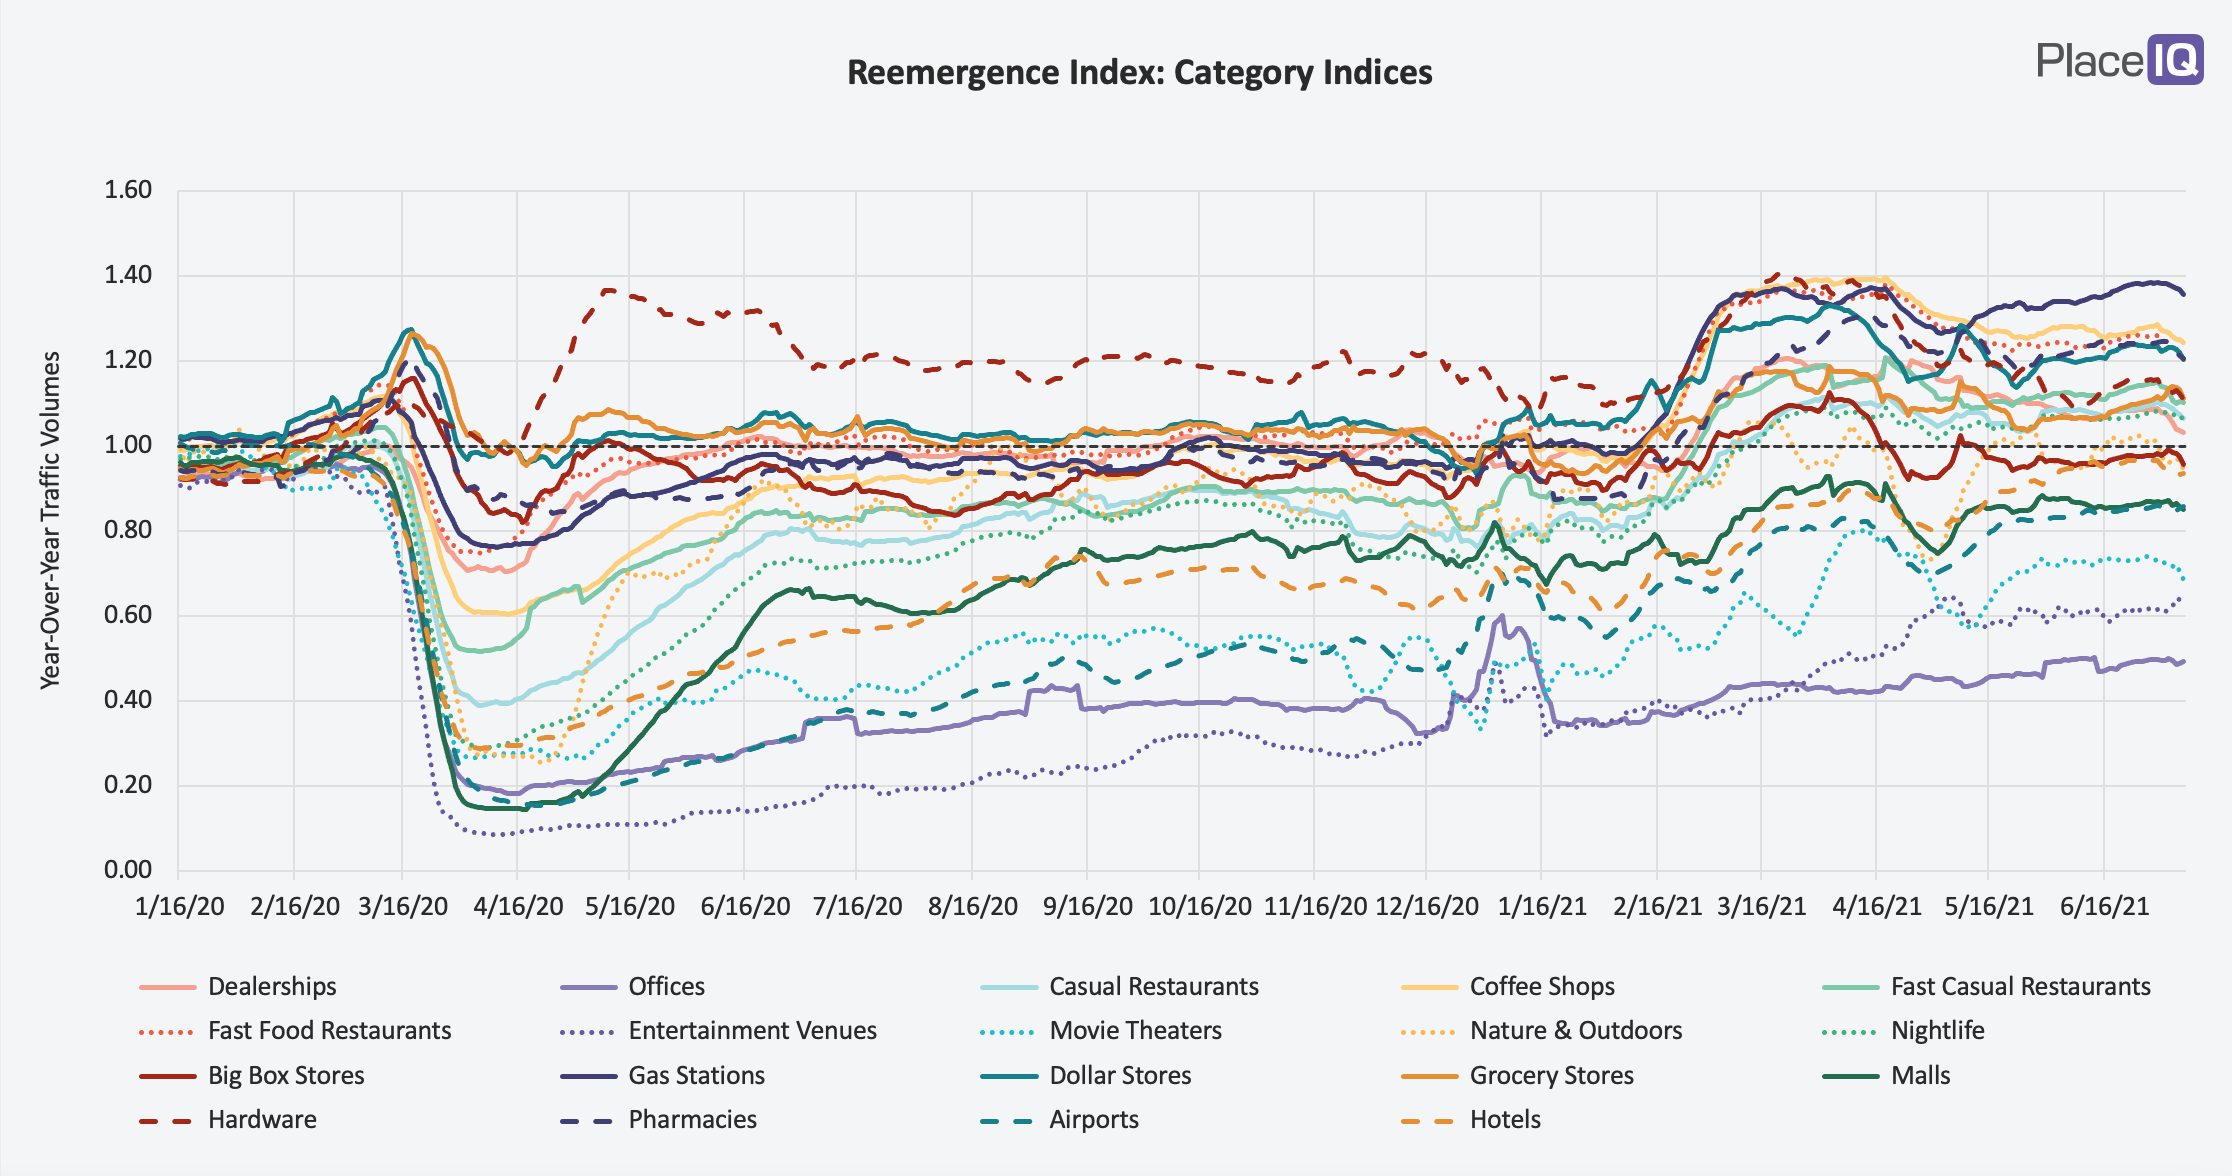 CHART: Reemergence Index-Category Indices